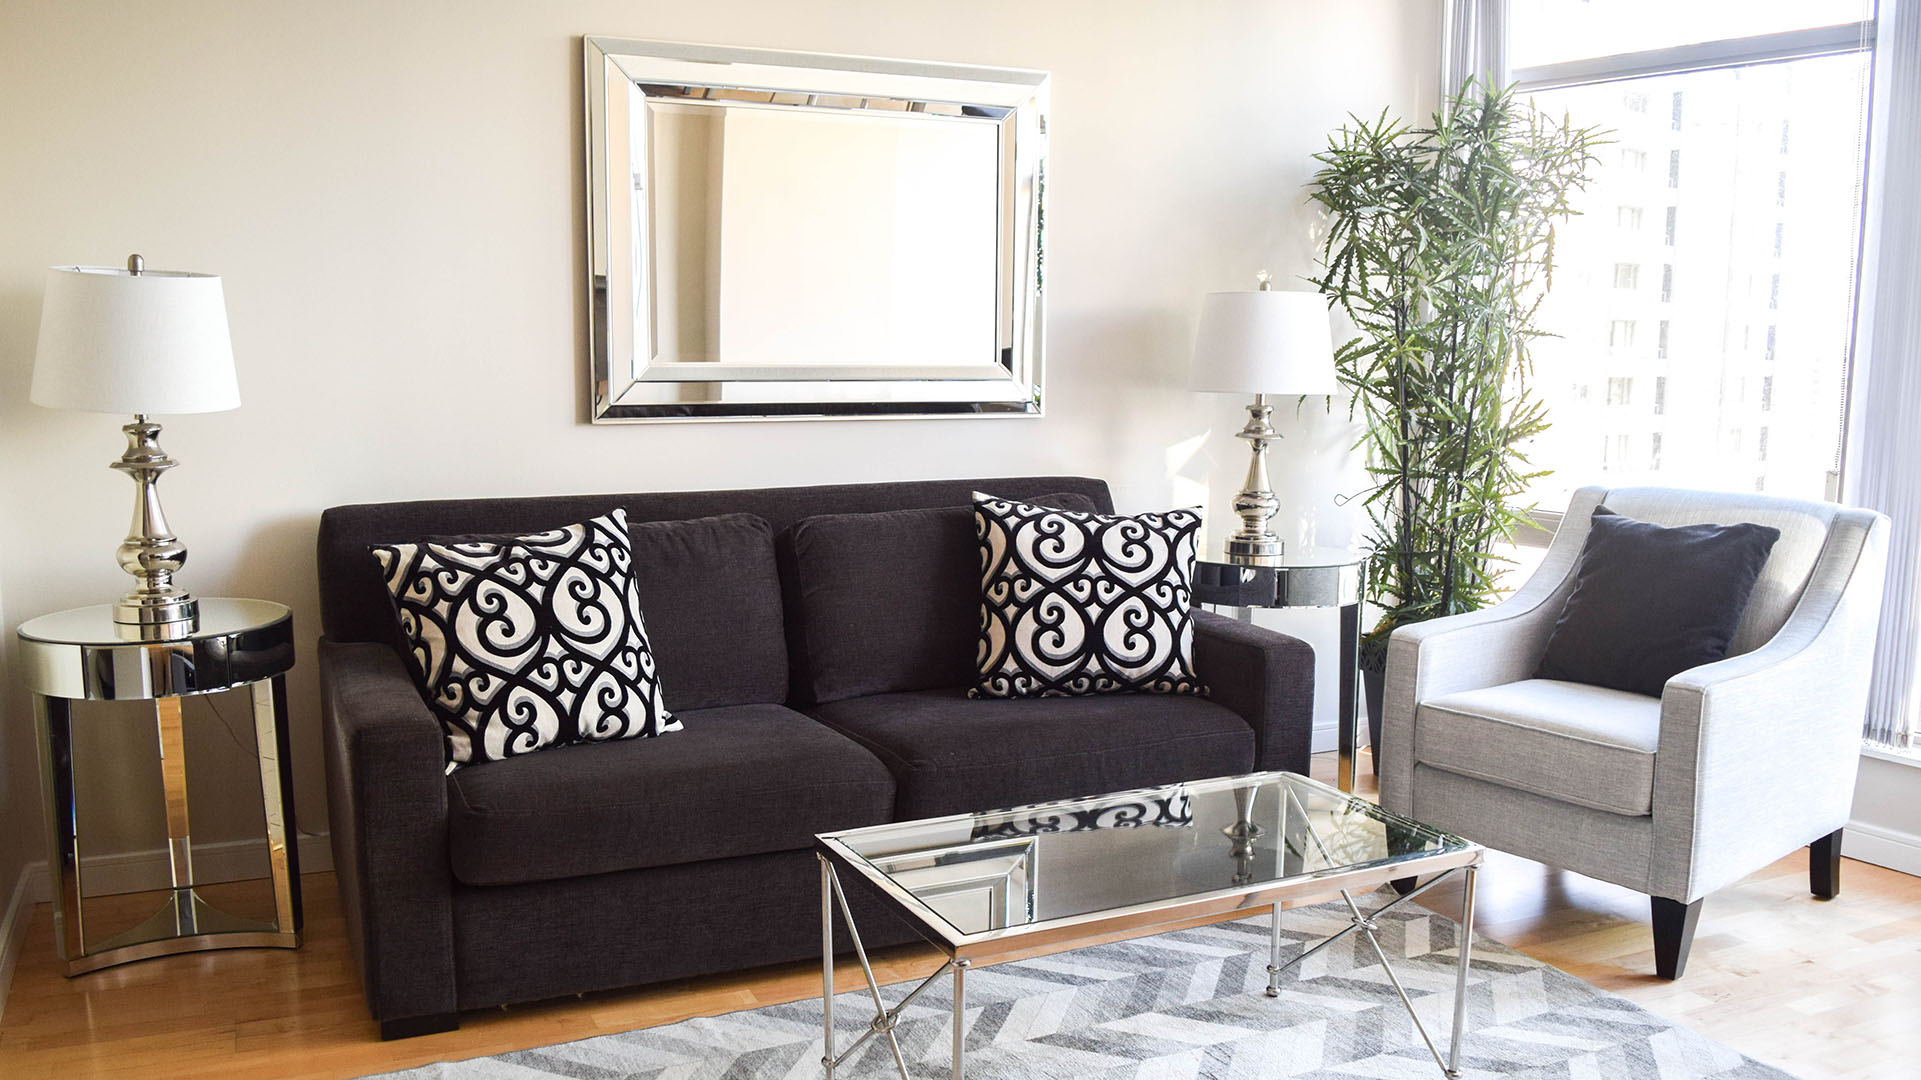 Photo of fully furnished apartment #1804 at The Palisades, 1200 Alberni Street, Vancouver, BC